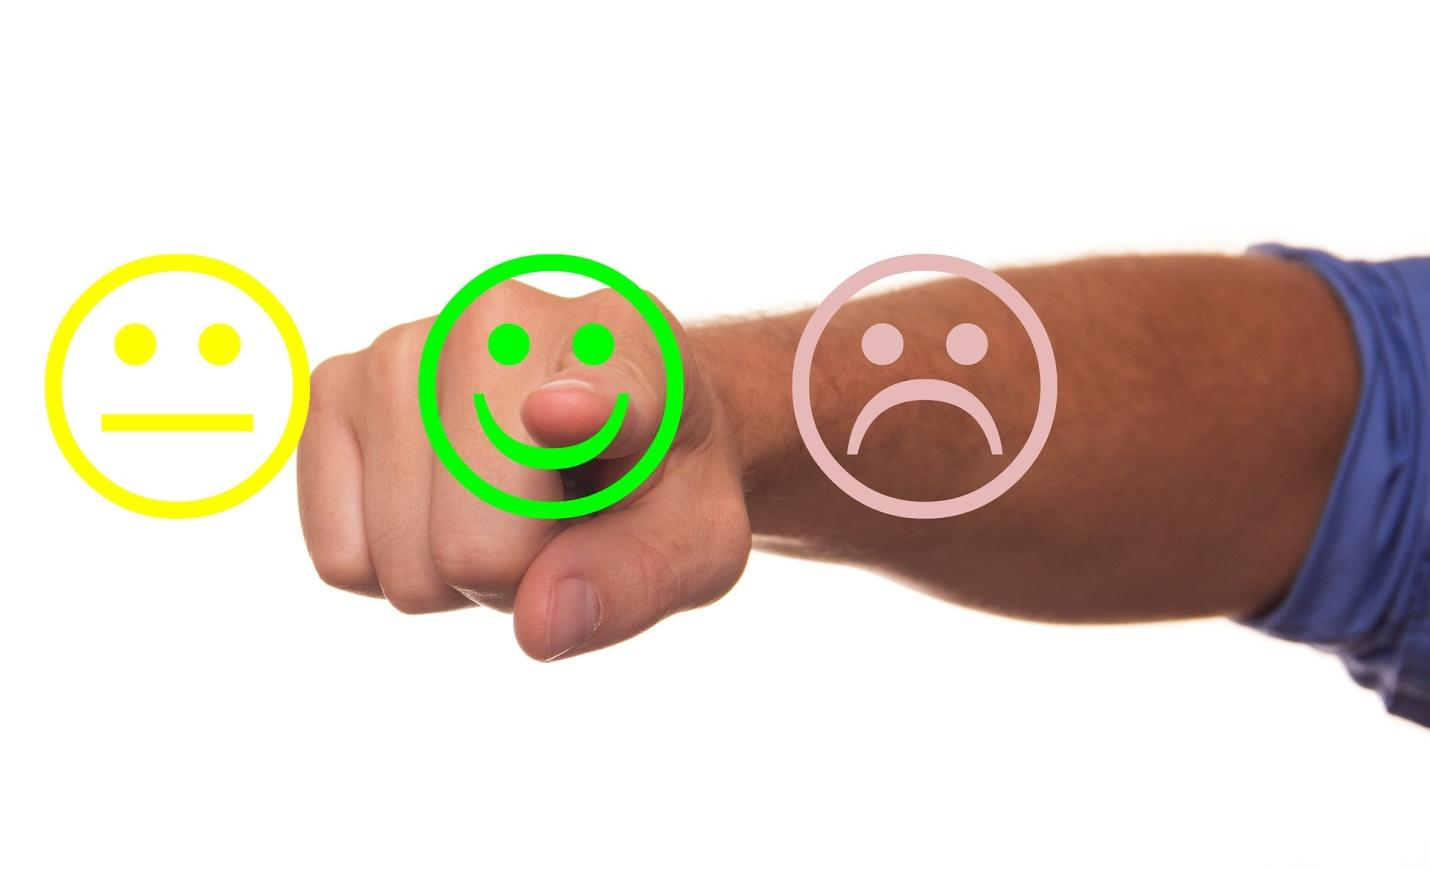 The Top Three Things You Can Focus on to Establish True Customer Loyalty